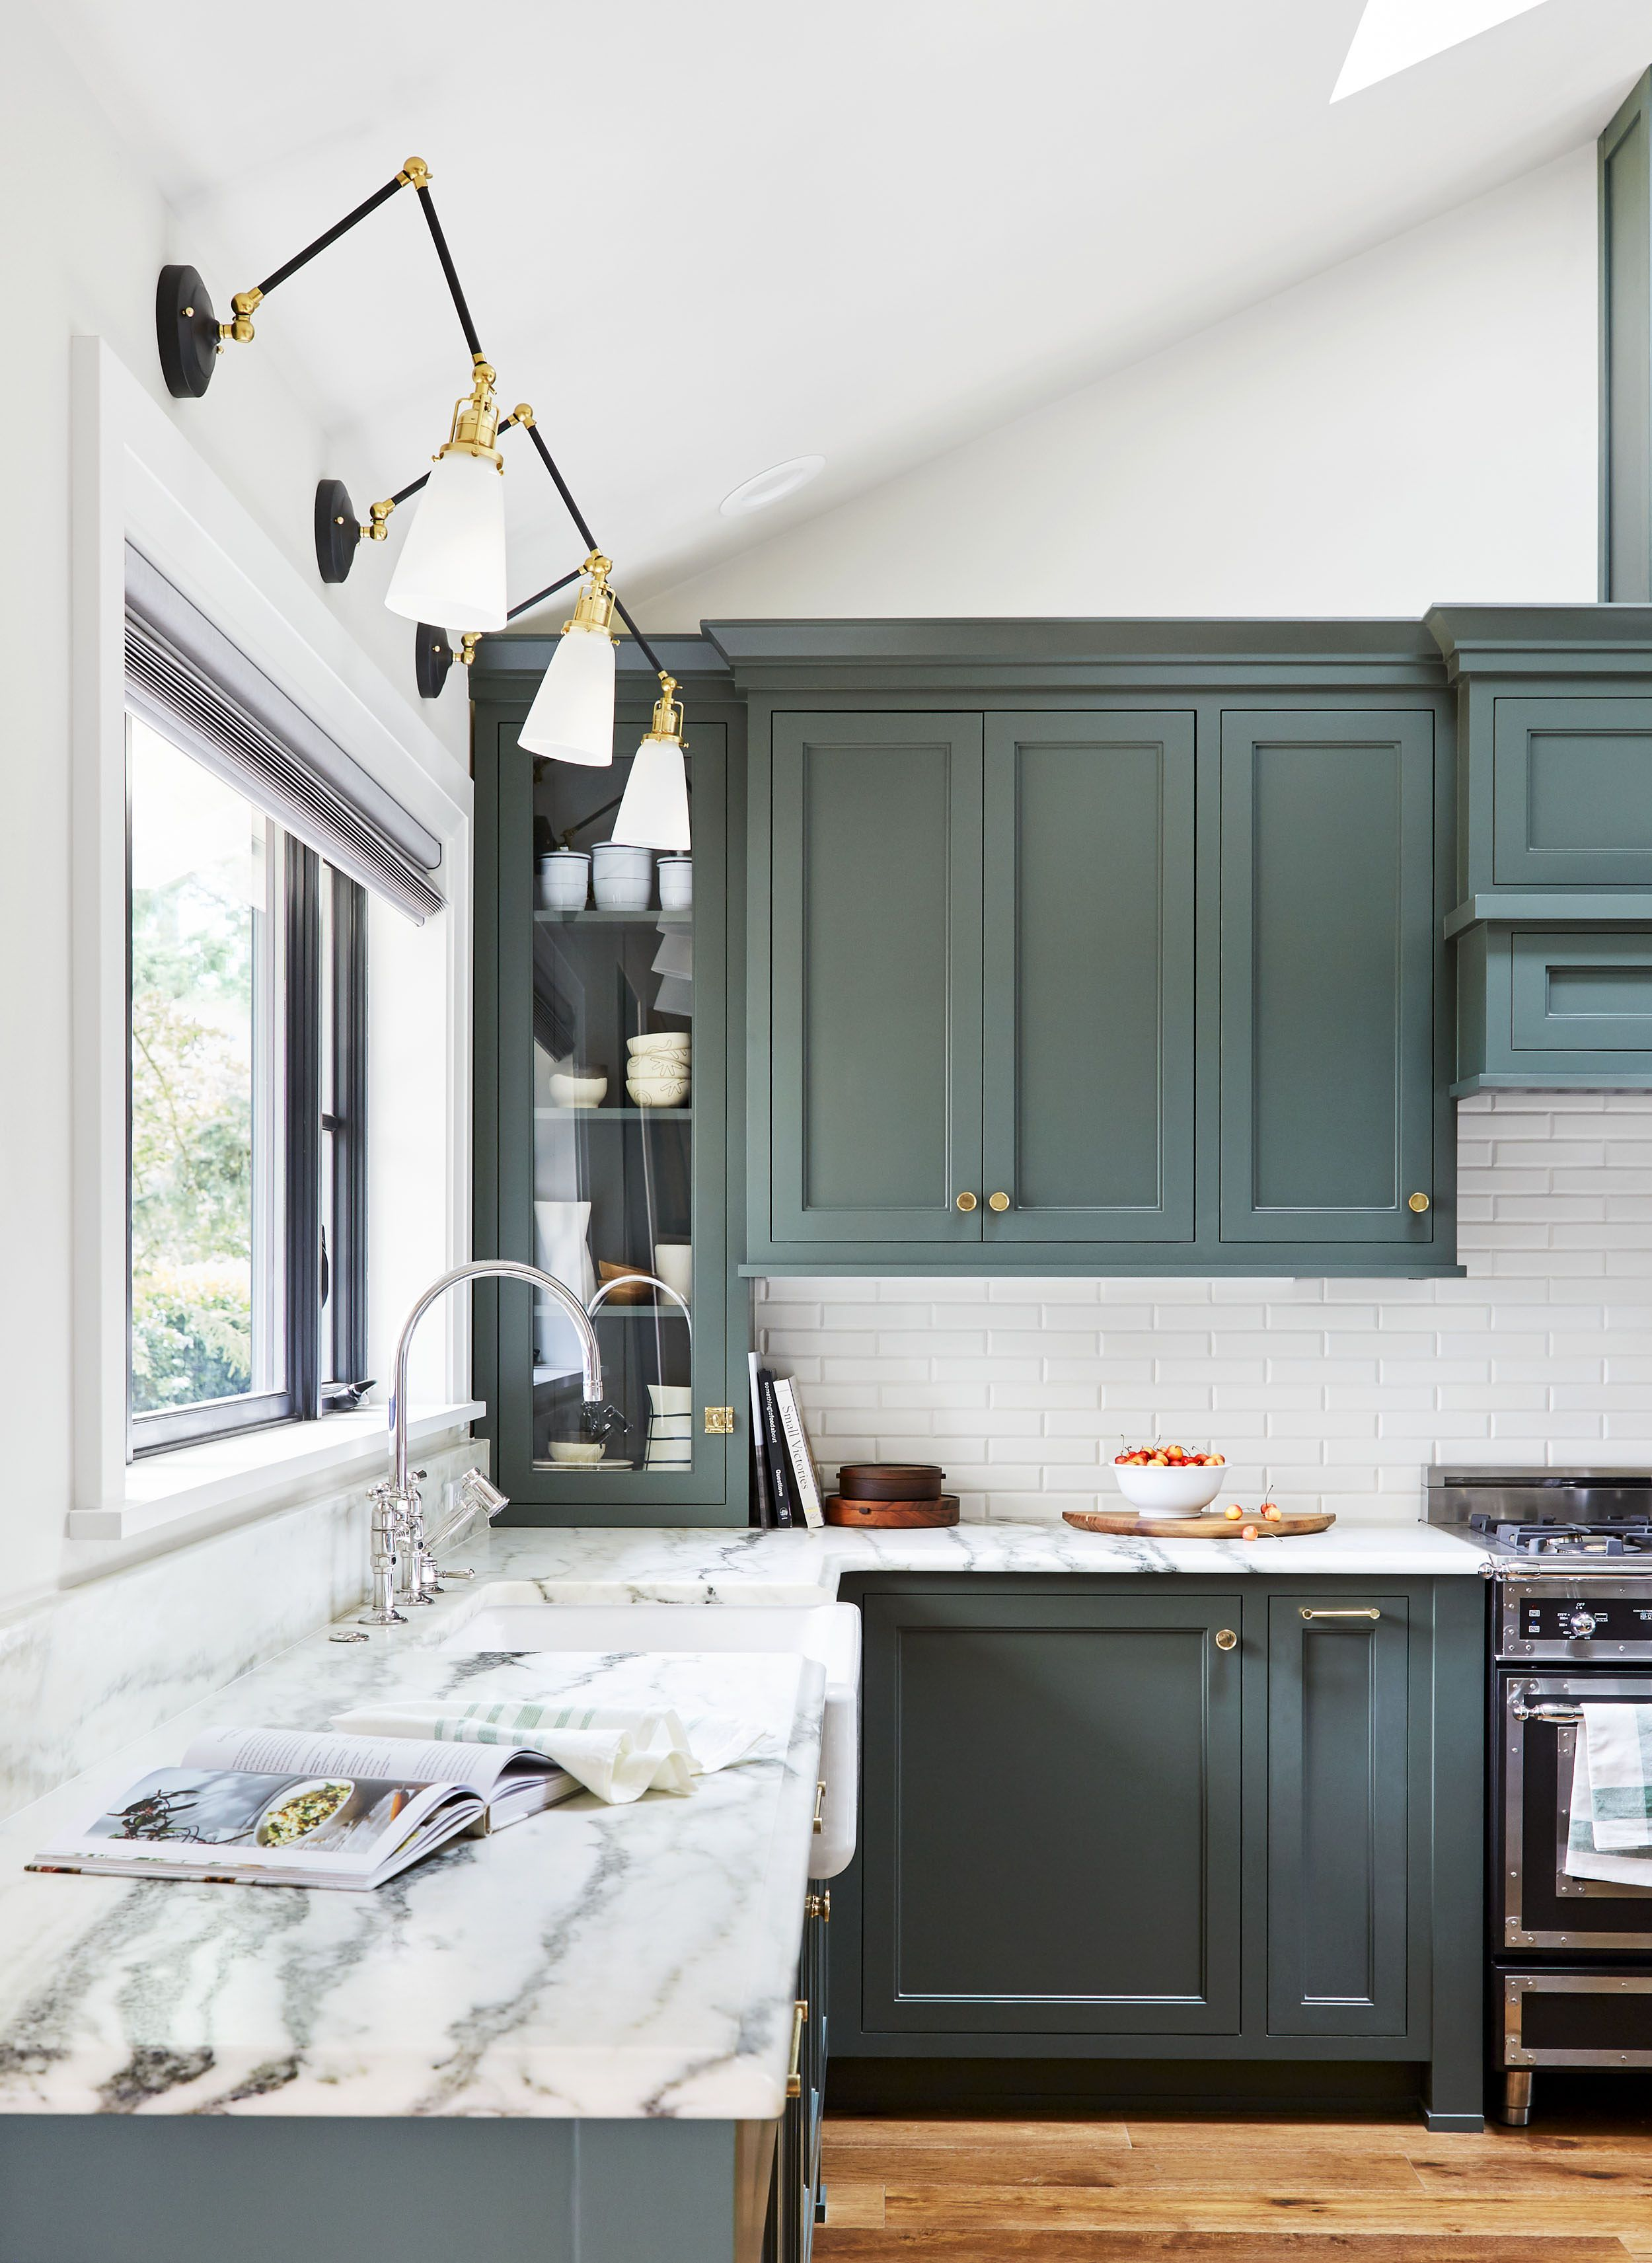 All The What S Why S How Much S Of The Portland Kitchen Big Reveal Emily Henderson Interior Design Kitchen Kitchen Interior Kitchen Design What's new in kitchen design